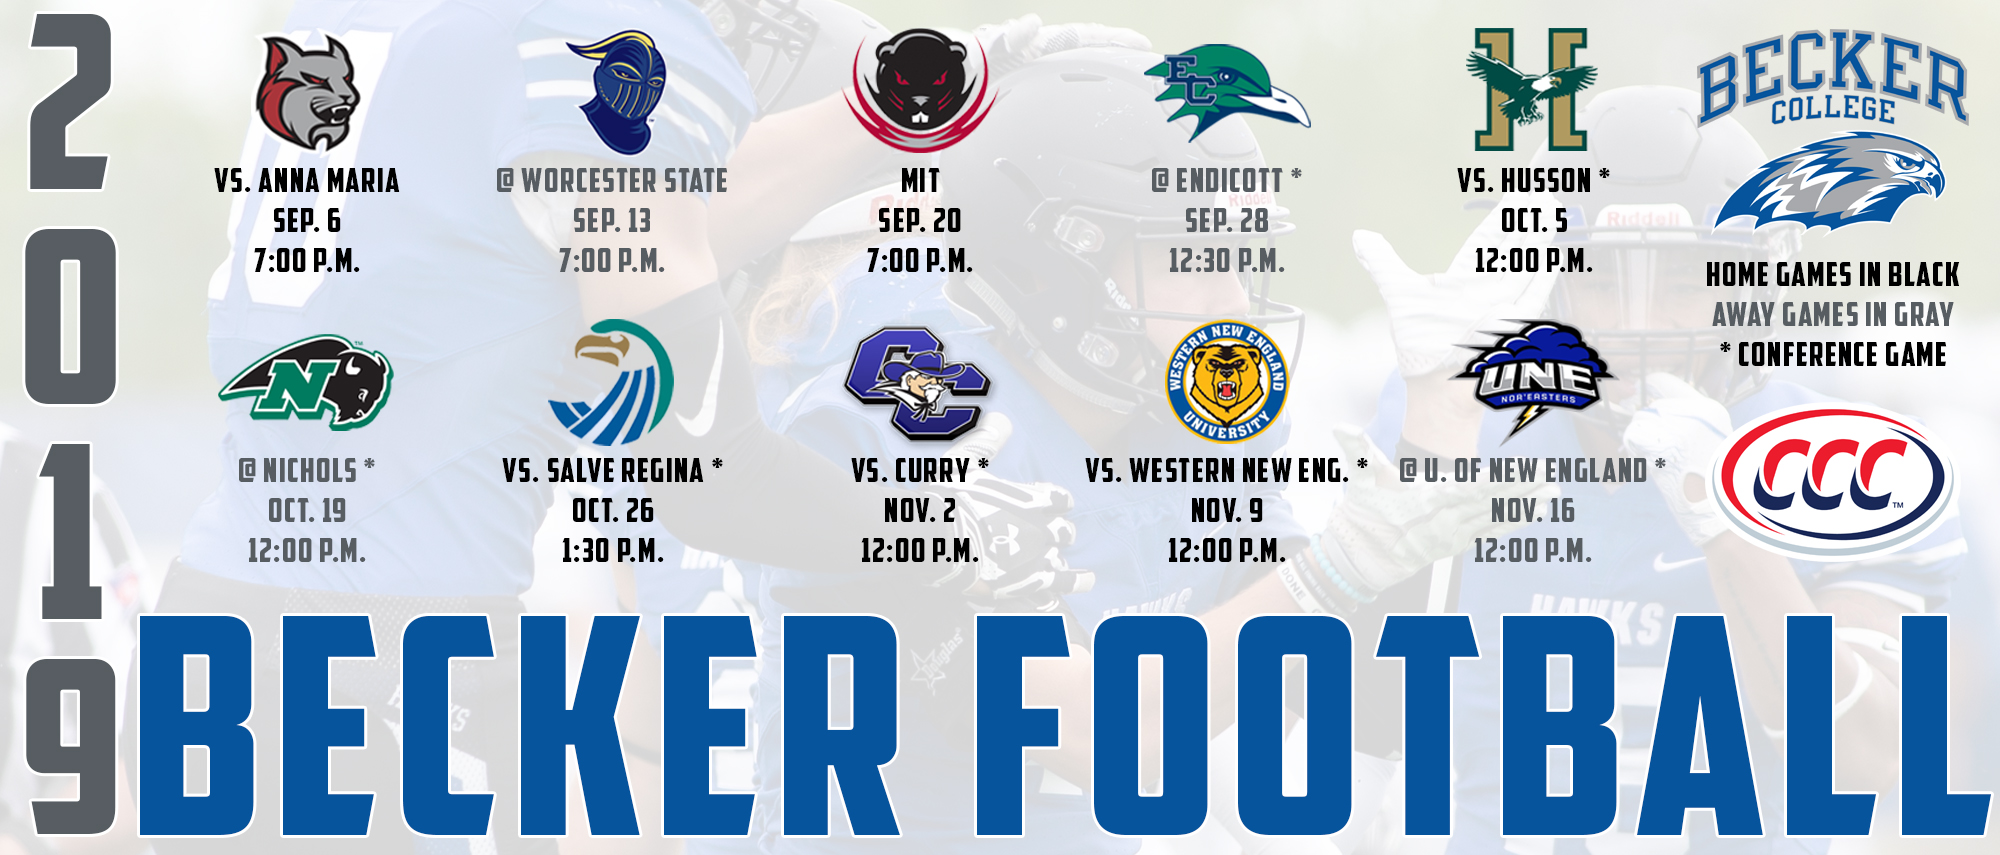 2019 Becker College Football Schedule